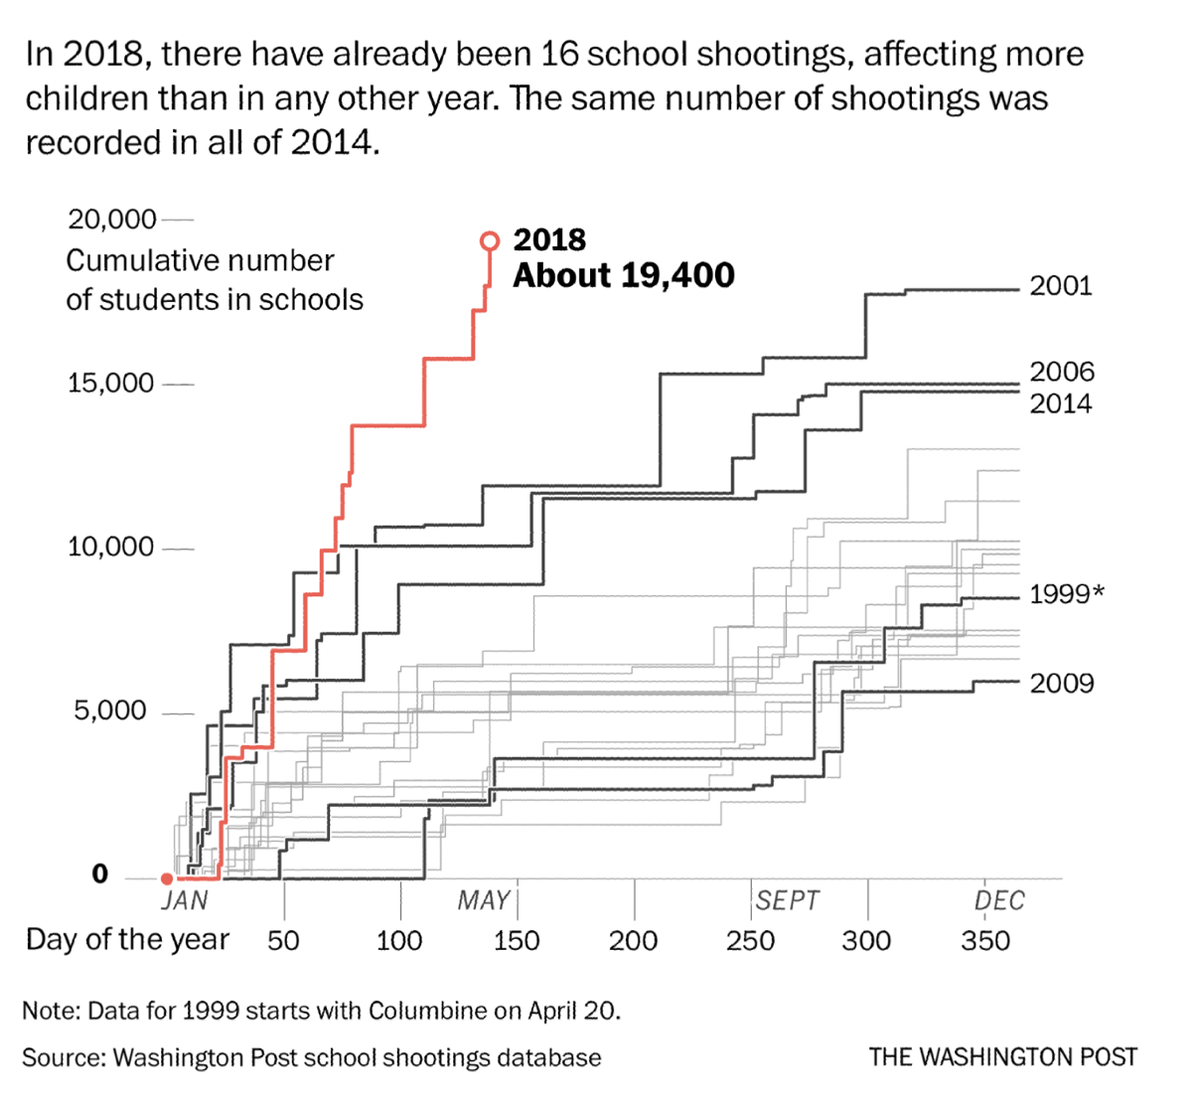 A sickening graph as young lives are taken with lifeless response When #NeverAgain is not just #AgainandAgain but worse than ever.